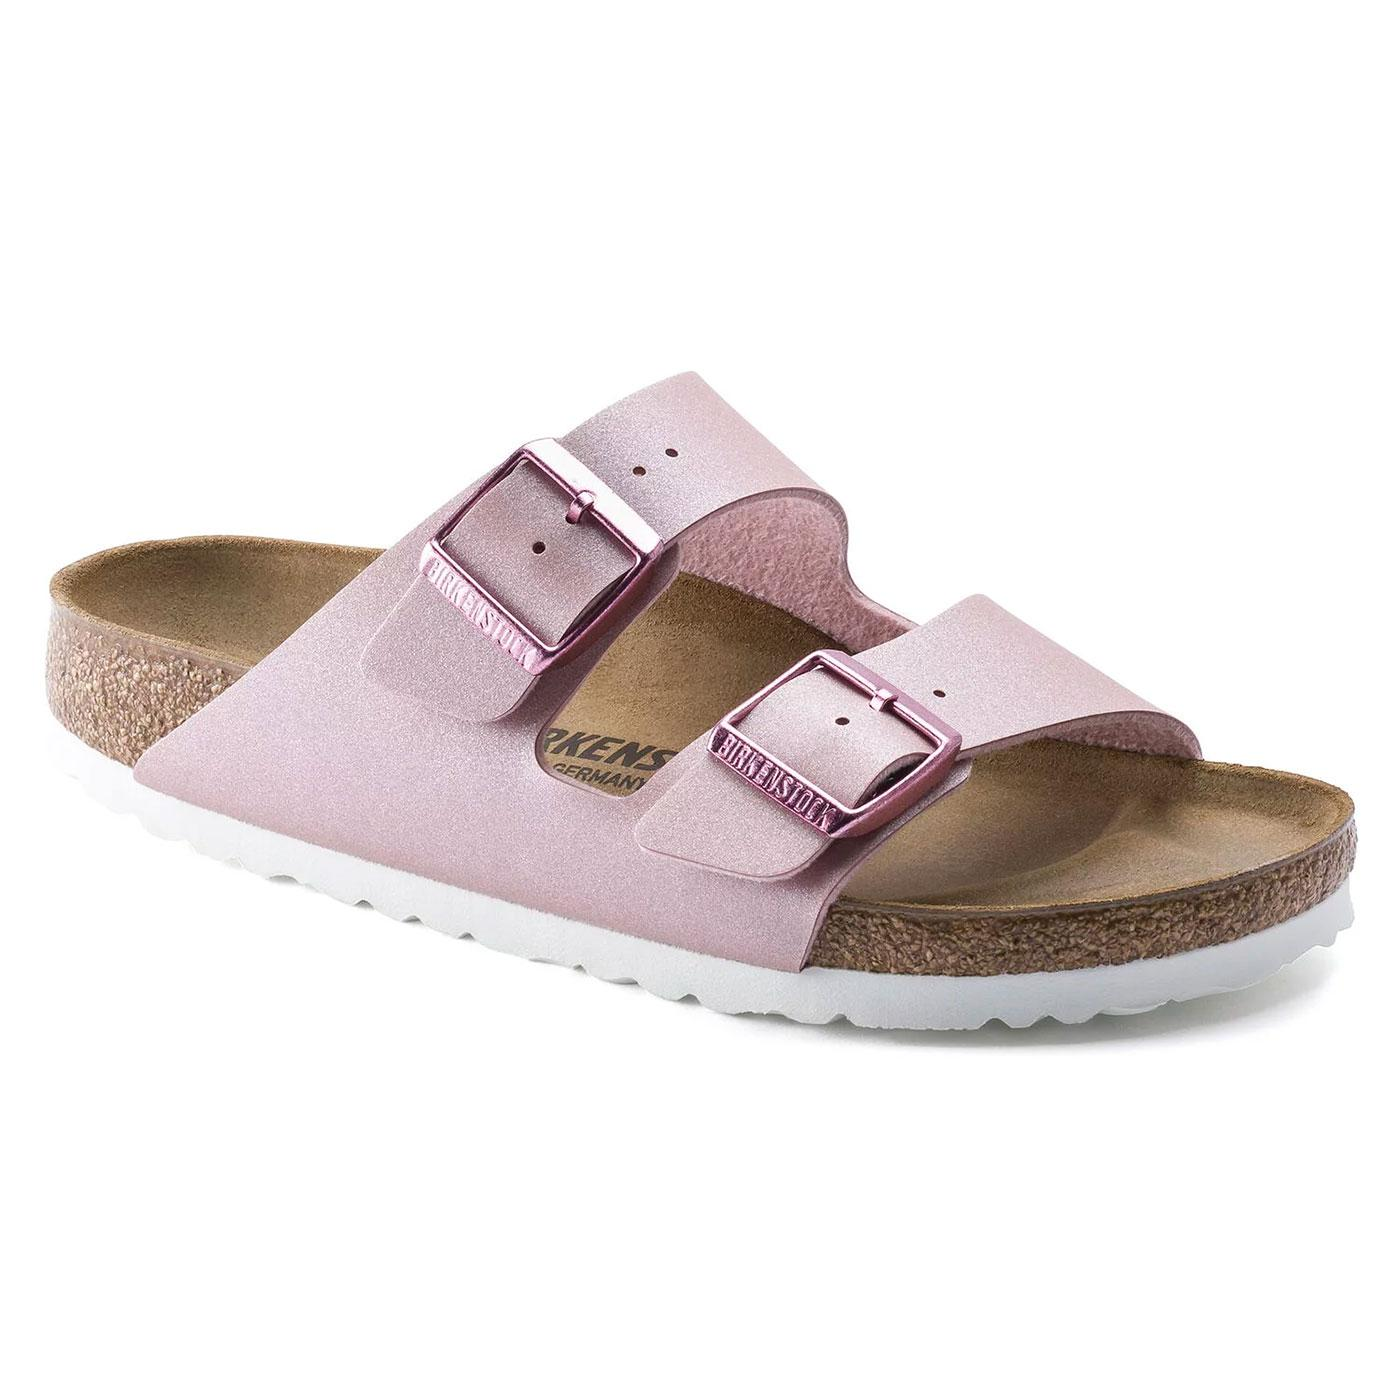 Arizona BF BIRKENSTOCK Womens Icy Metallic Sandals